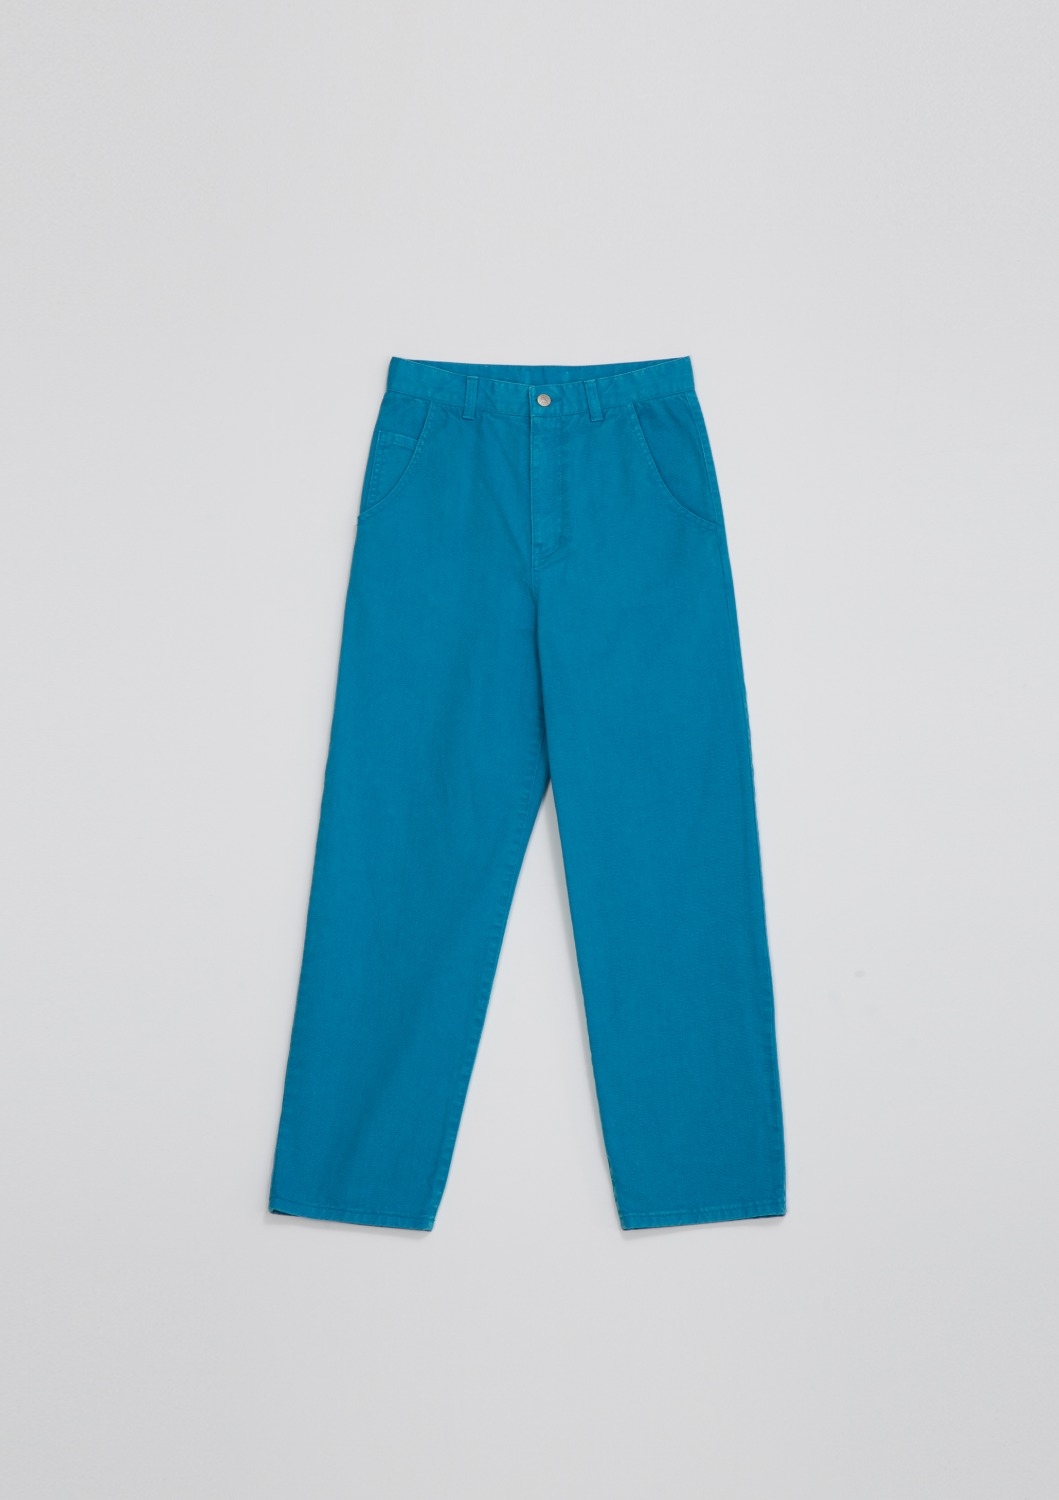 Garment Dyed Highrise Jean - Aqua Blue Cotton